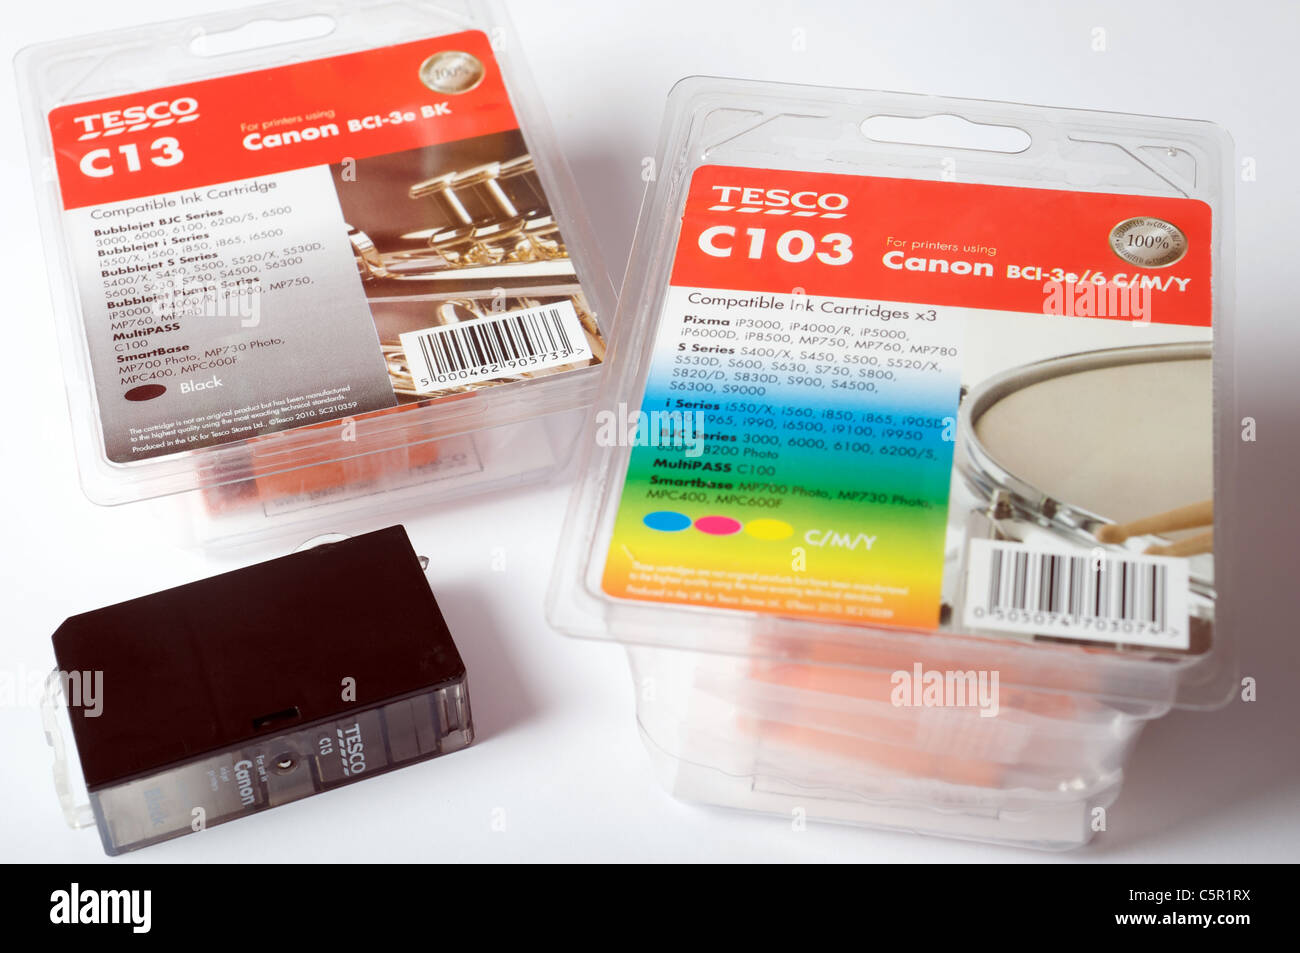 Tesco Canon compatible ink cartridge - Stock Image